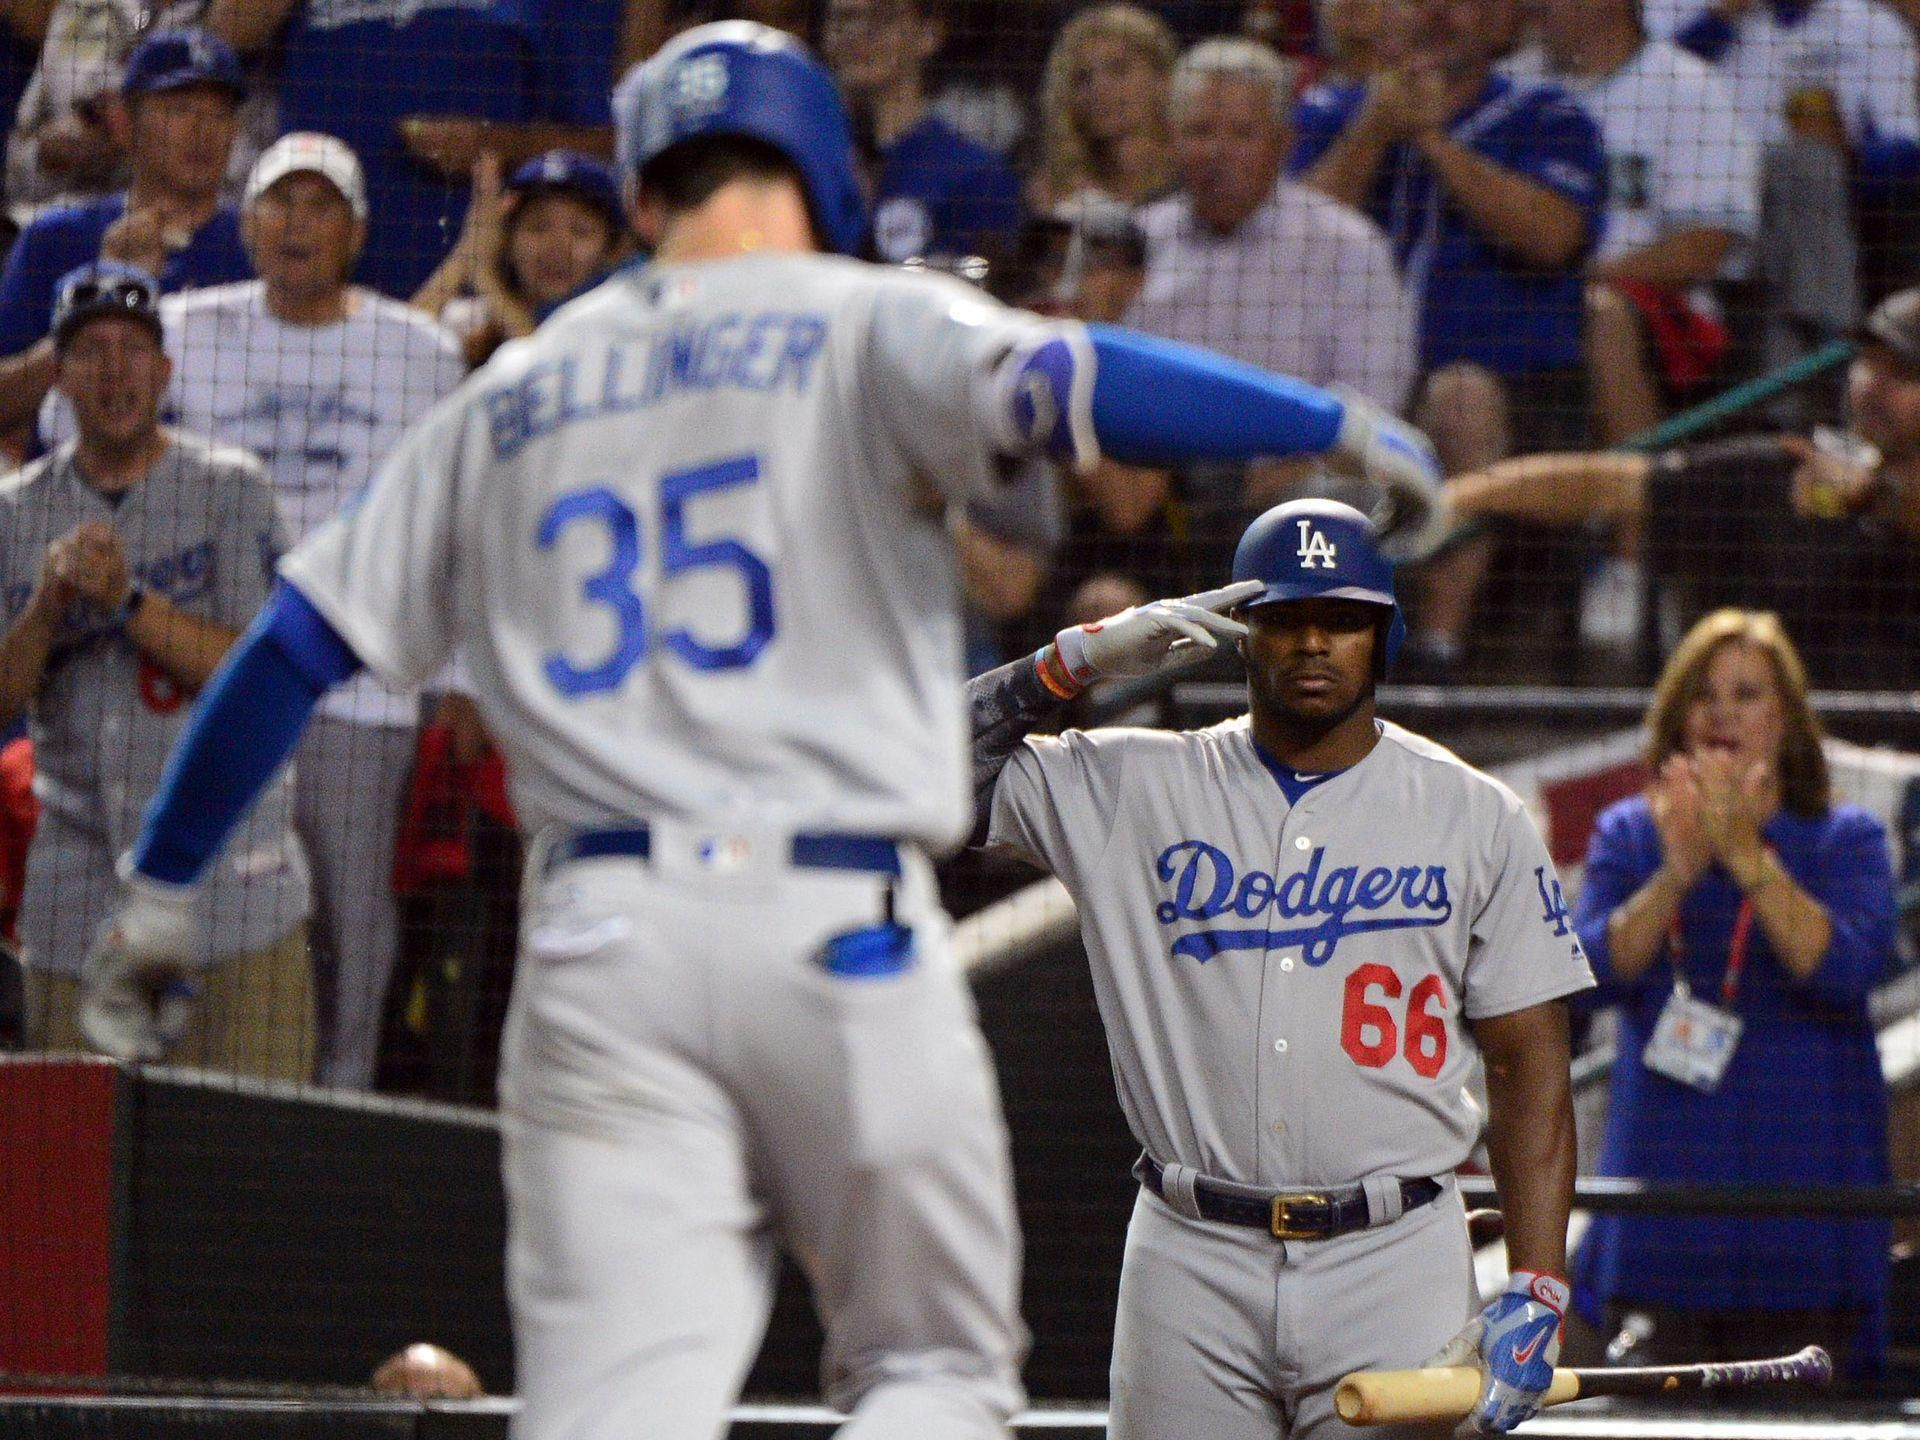 Dodgers sweep rival Diamondbacks to advance to second